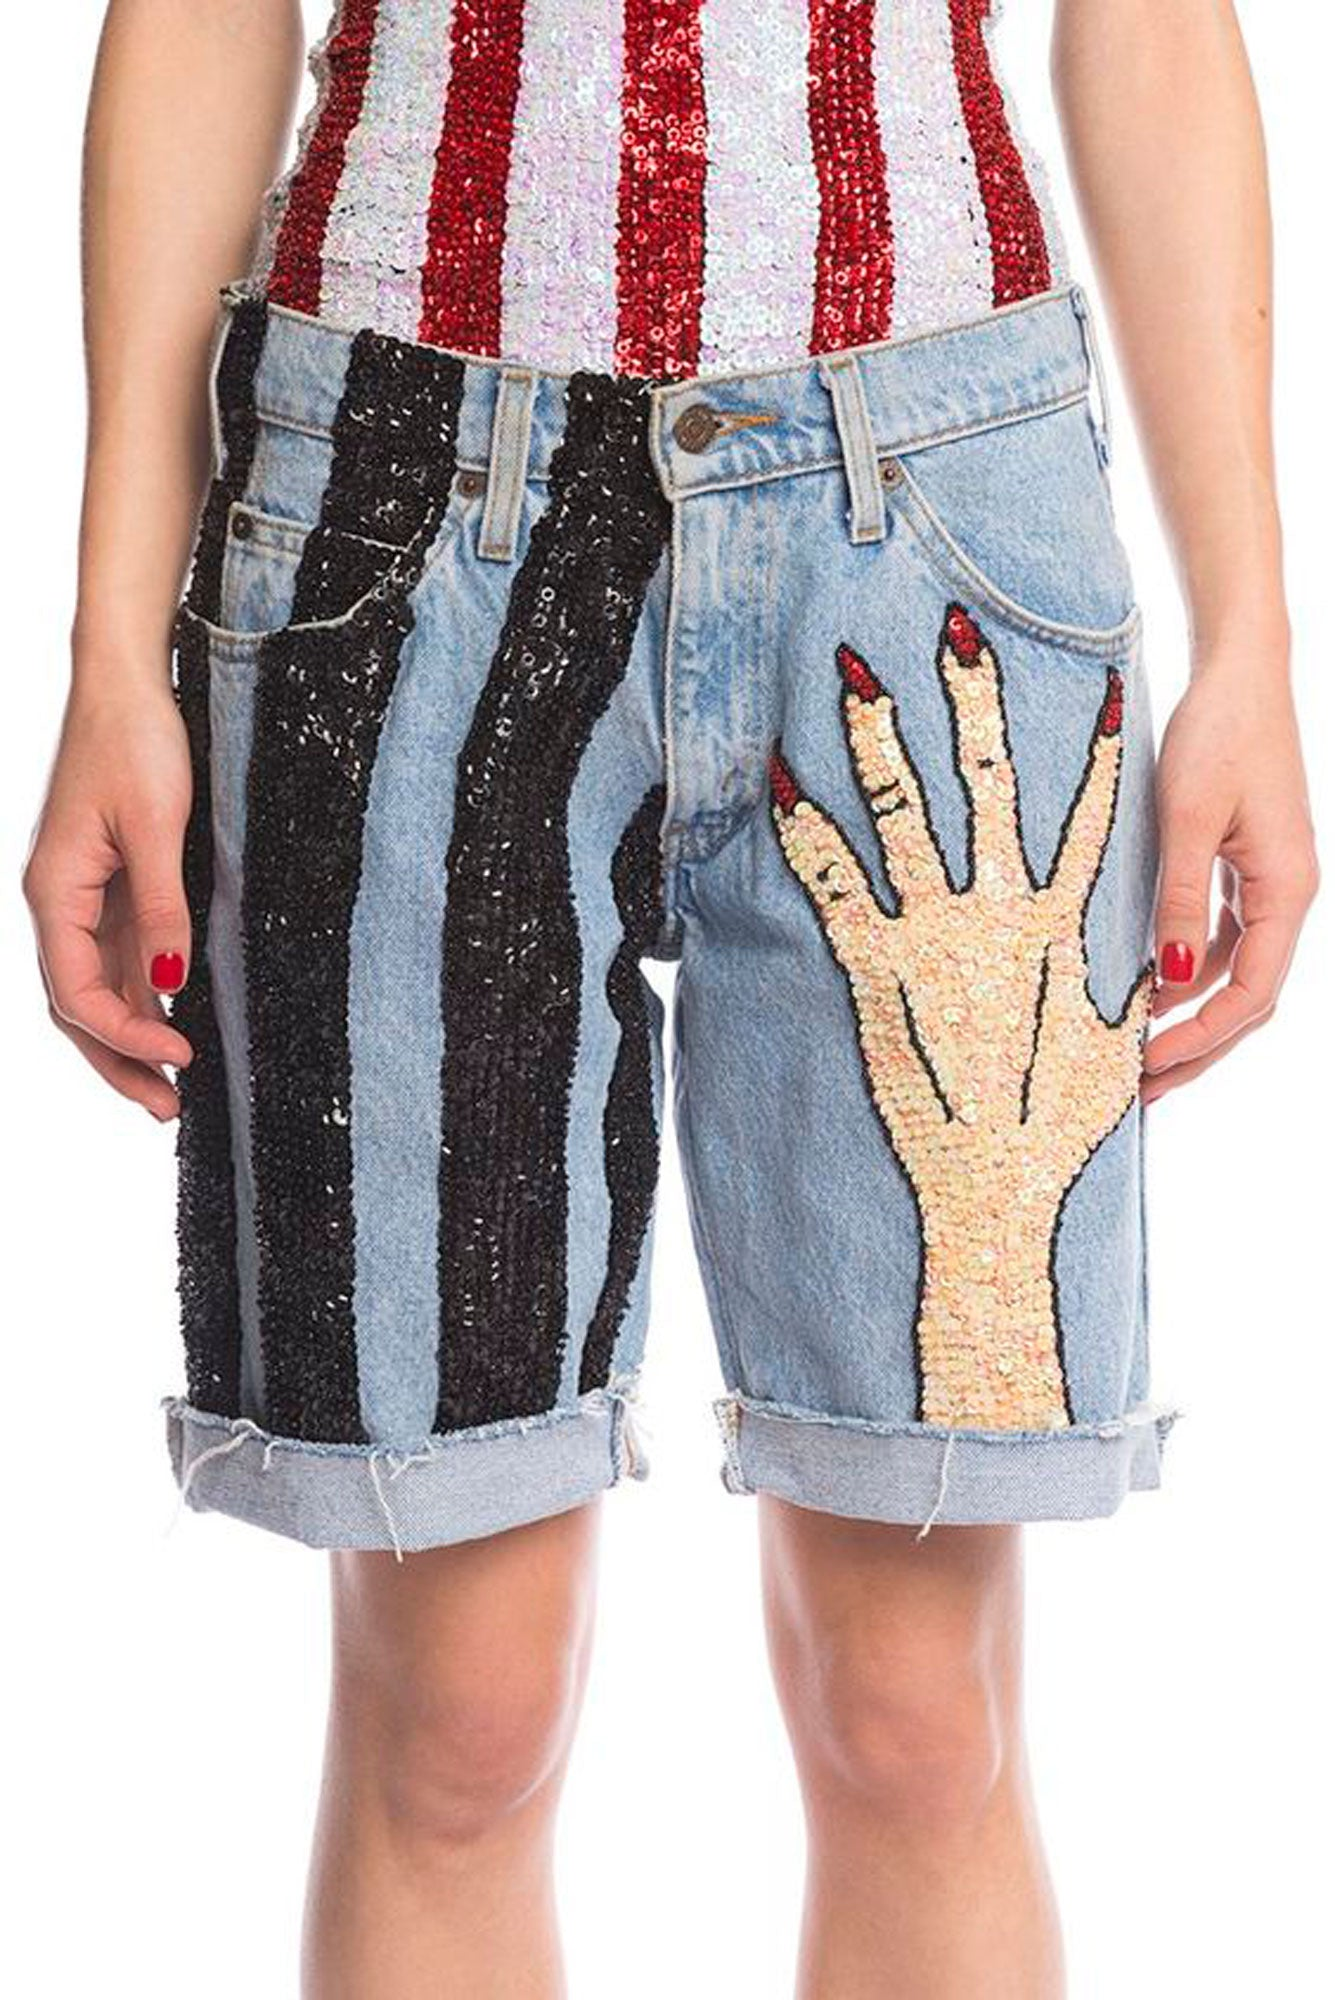 RARE ONE-OFF! 'HANDS OFF' Hand-Sequinned Denim Shorts